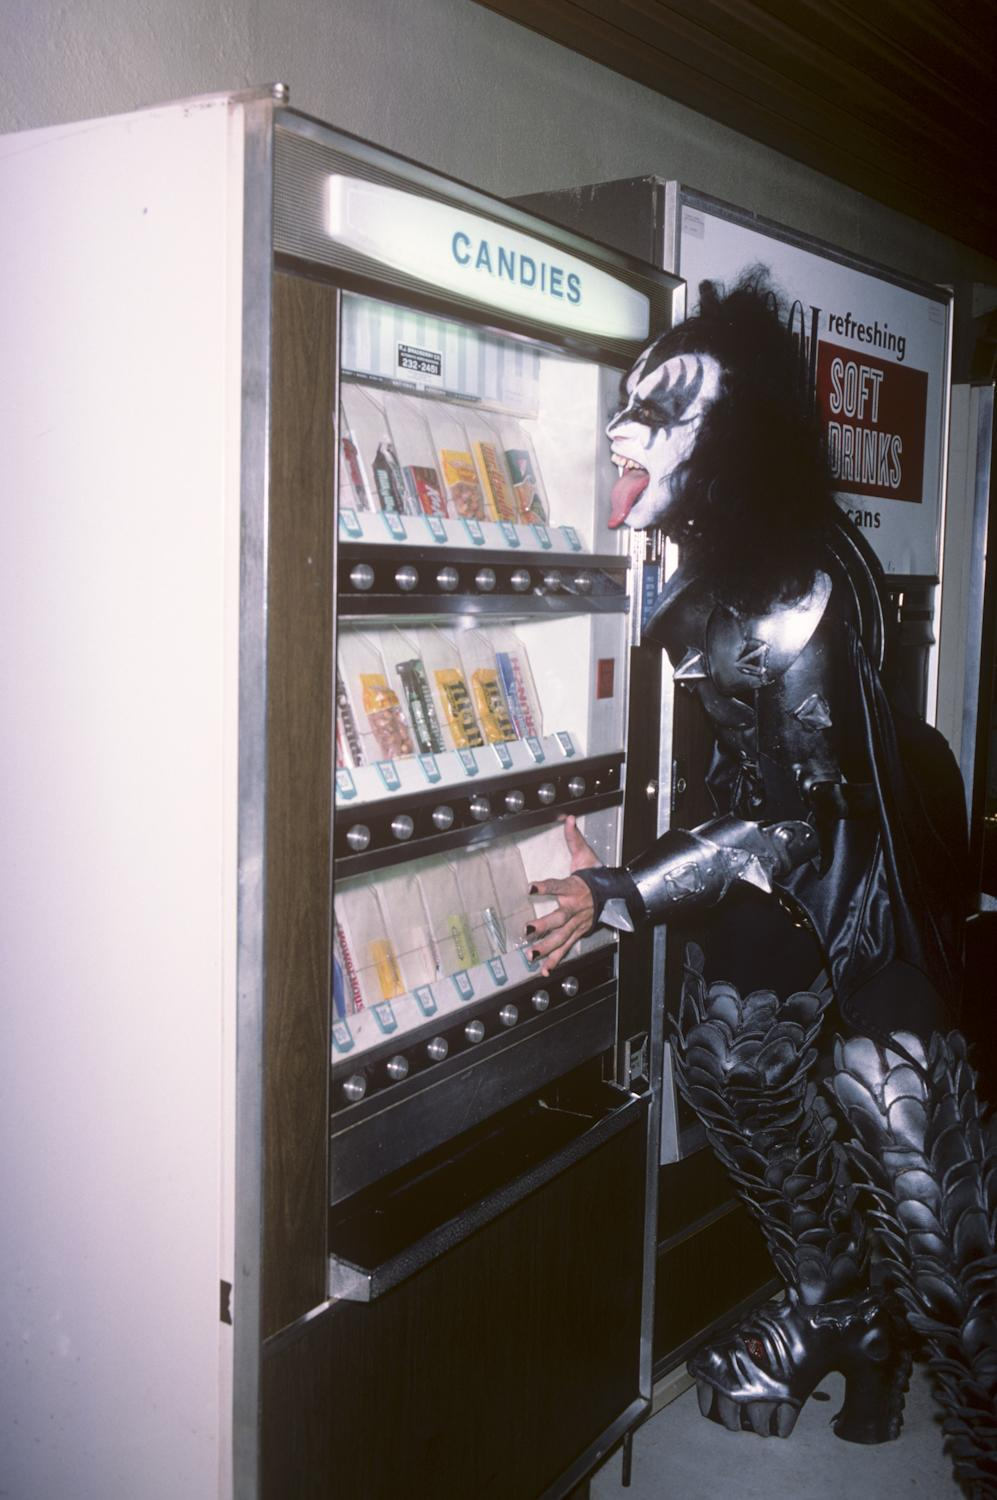 Gene Simmons wanting some candy. #Kiss (photo by Brad Elterman) http://t.co/xiF2Ec1OLS